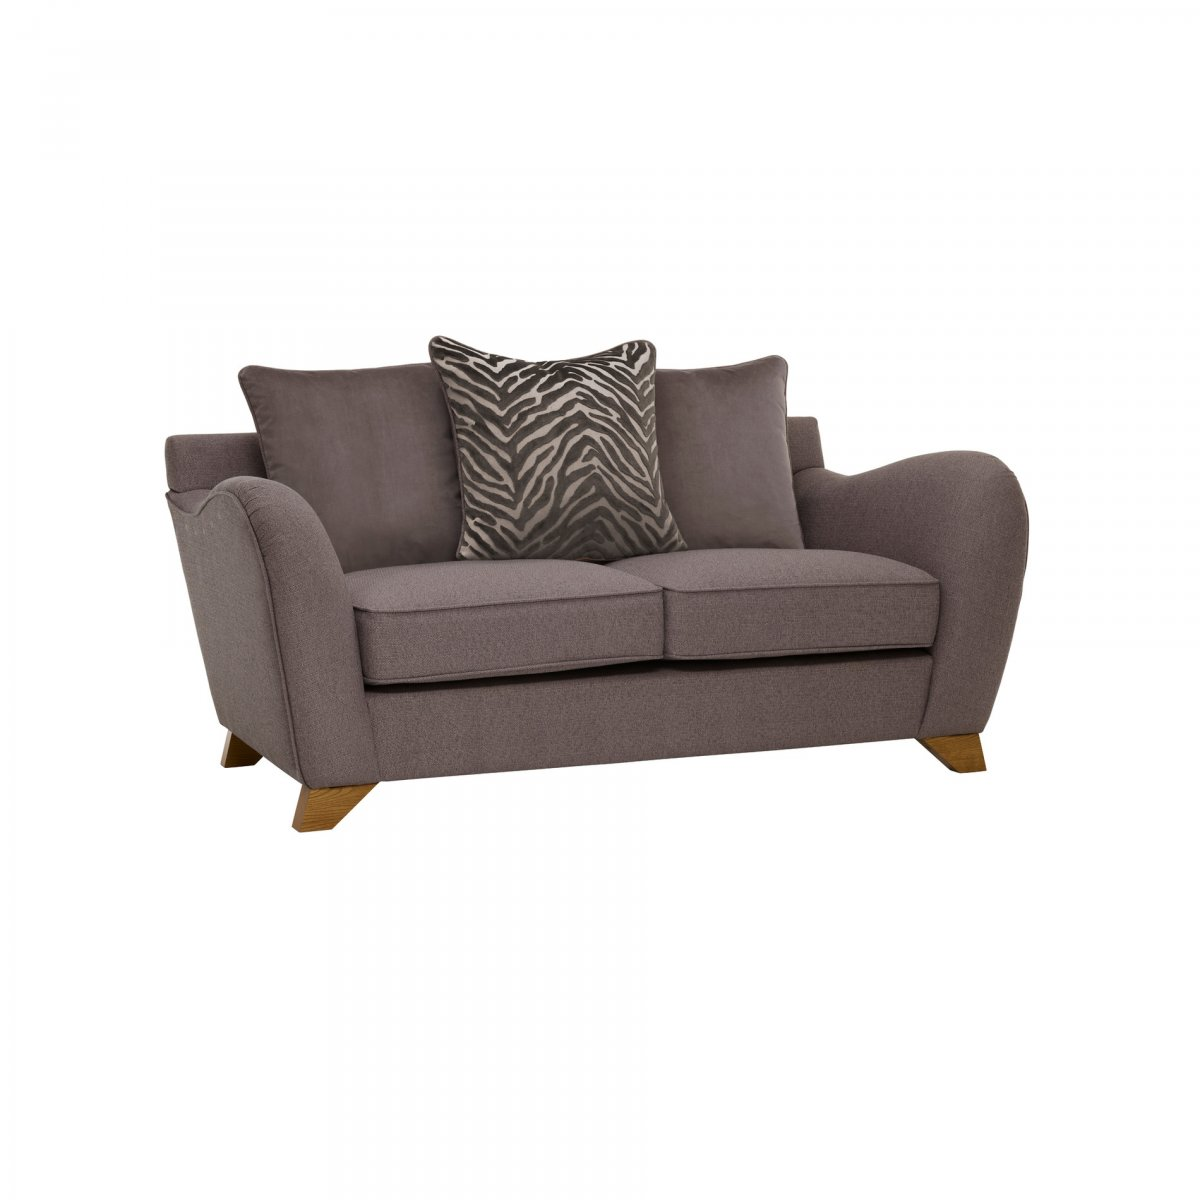 Pillows Traditional Sofa: Abbey Traditional 2 Seater Pillow Back Sofa